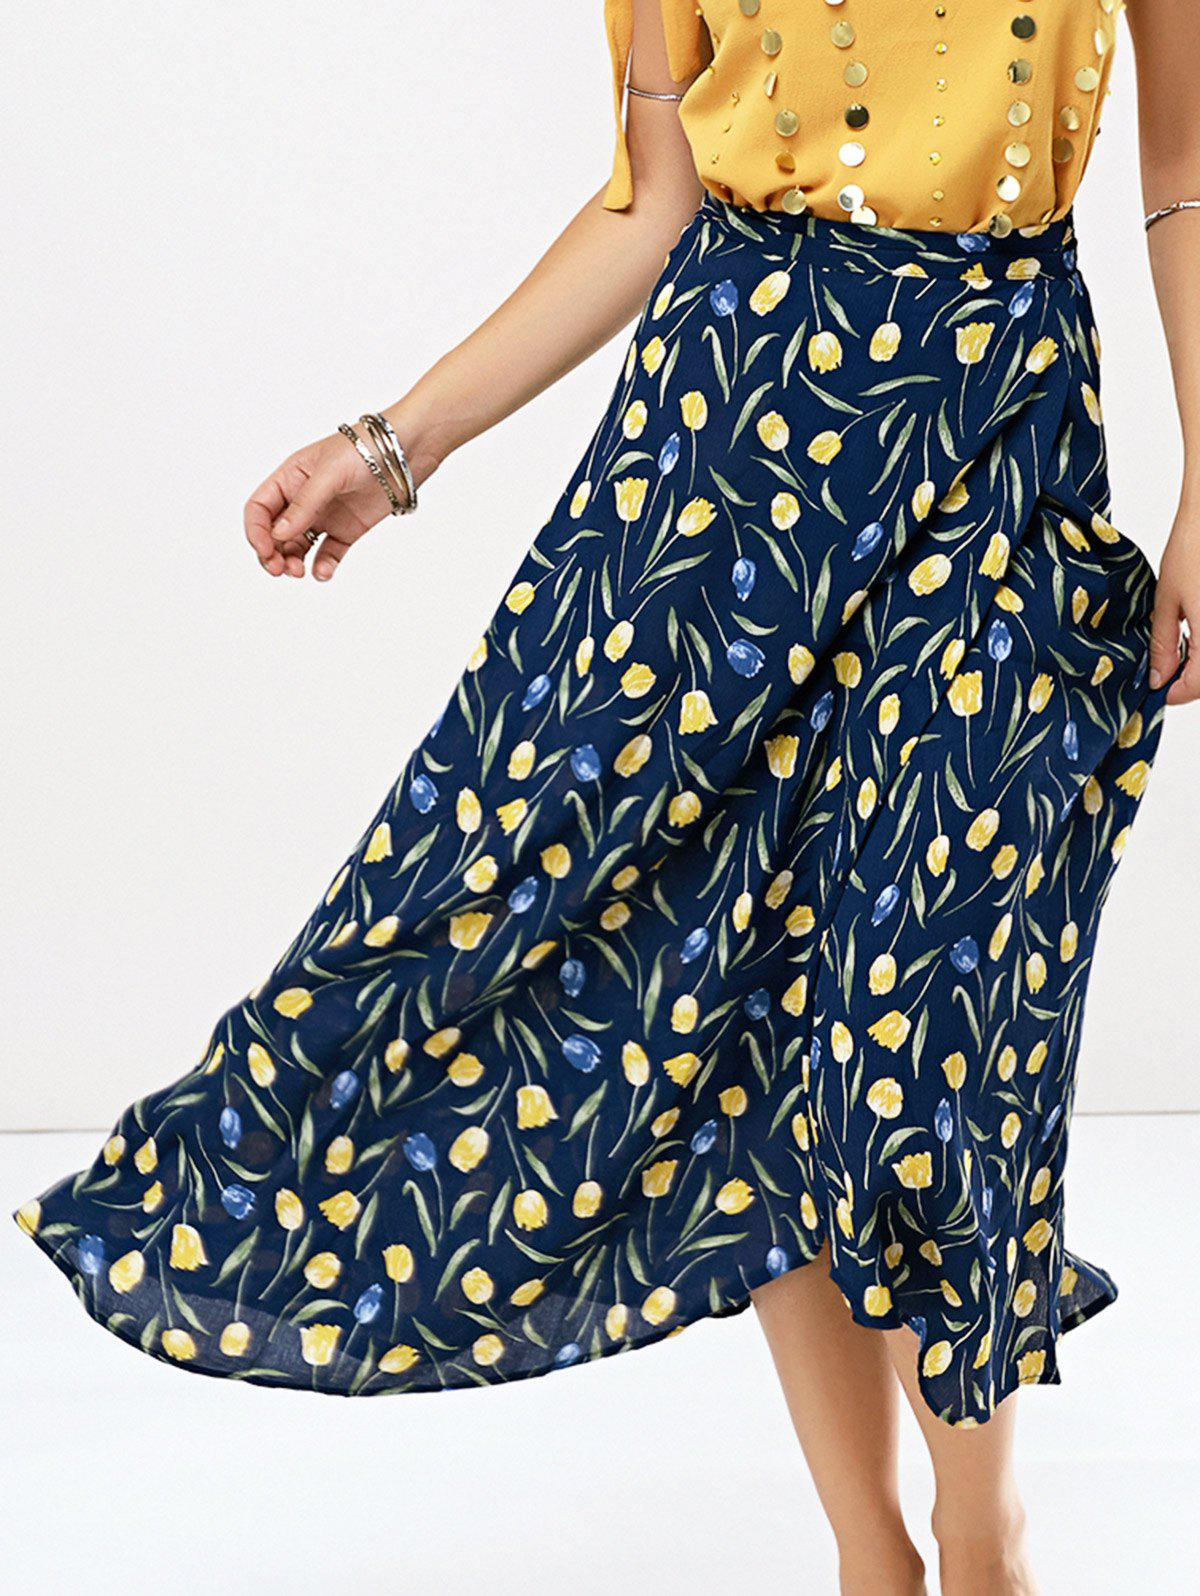 Floral Print Chiffon Skirt - CADETBLUE ONE SIZE(FIT SIZE XS TO M)